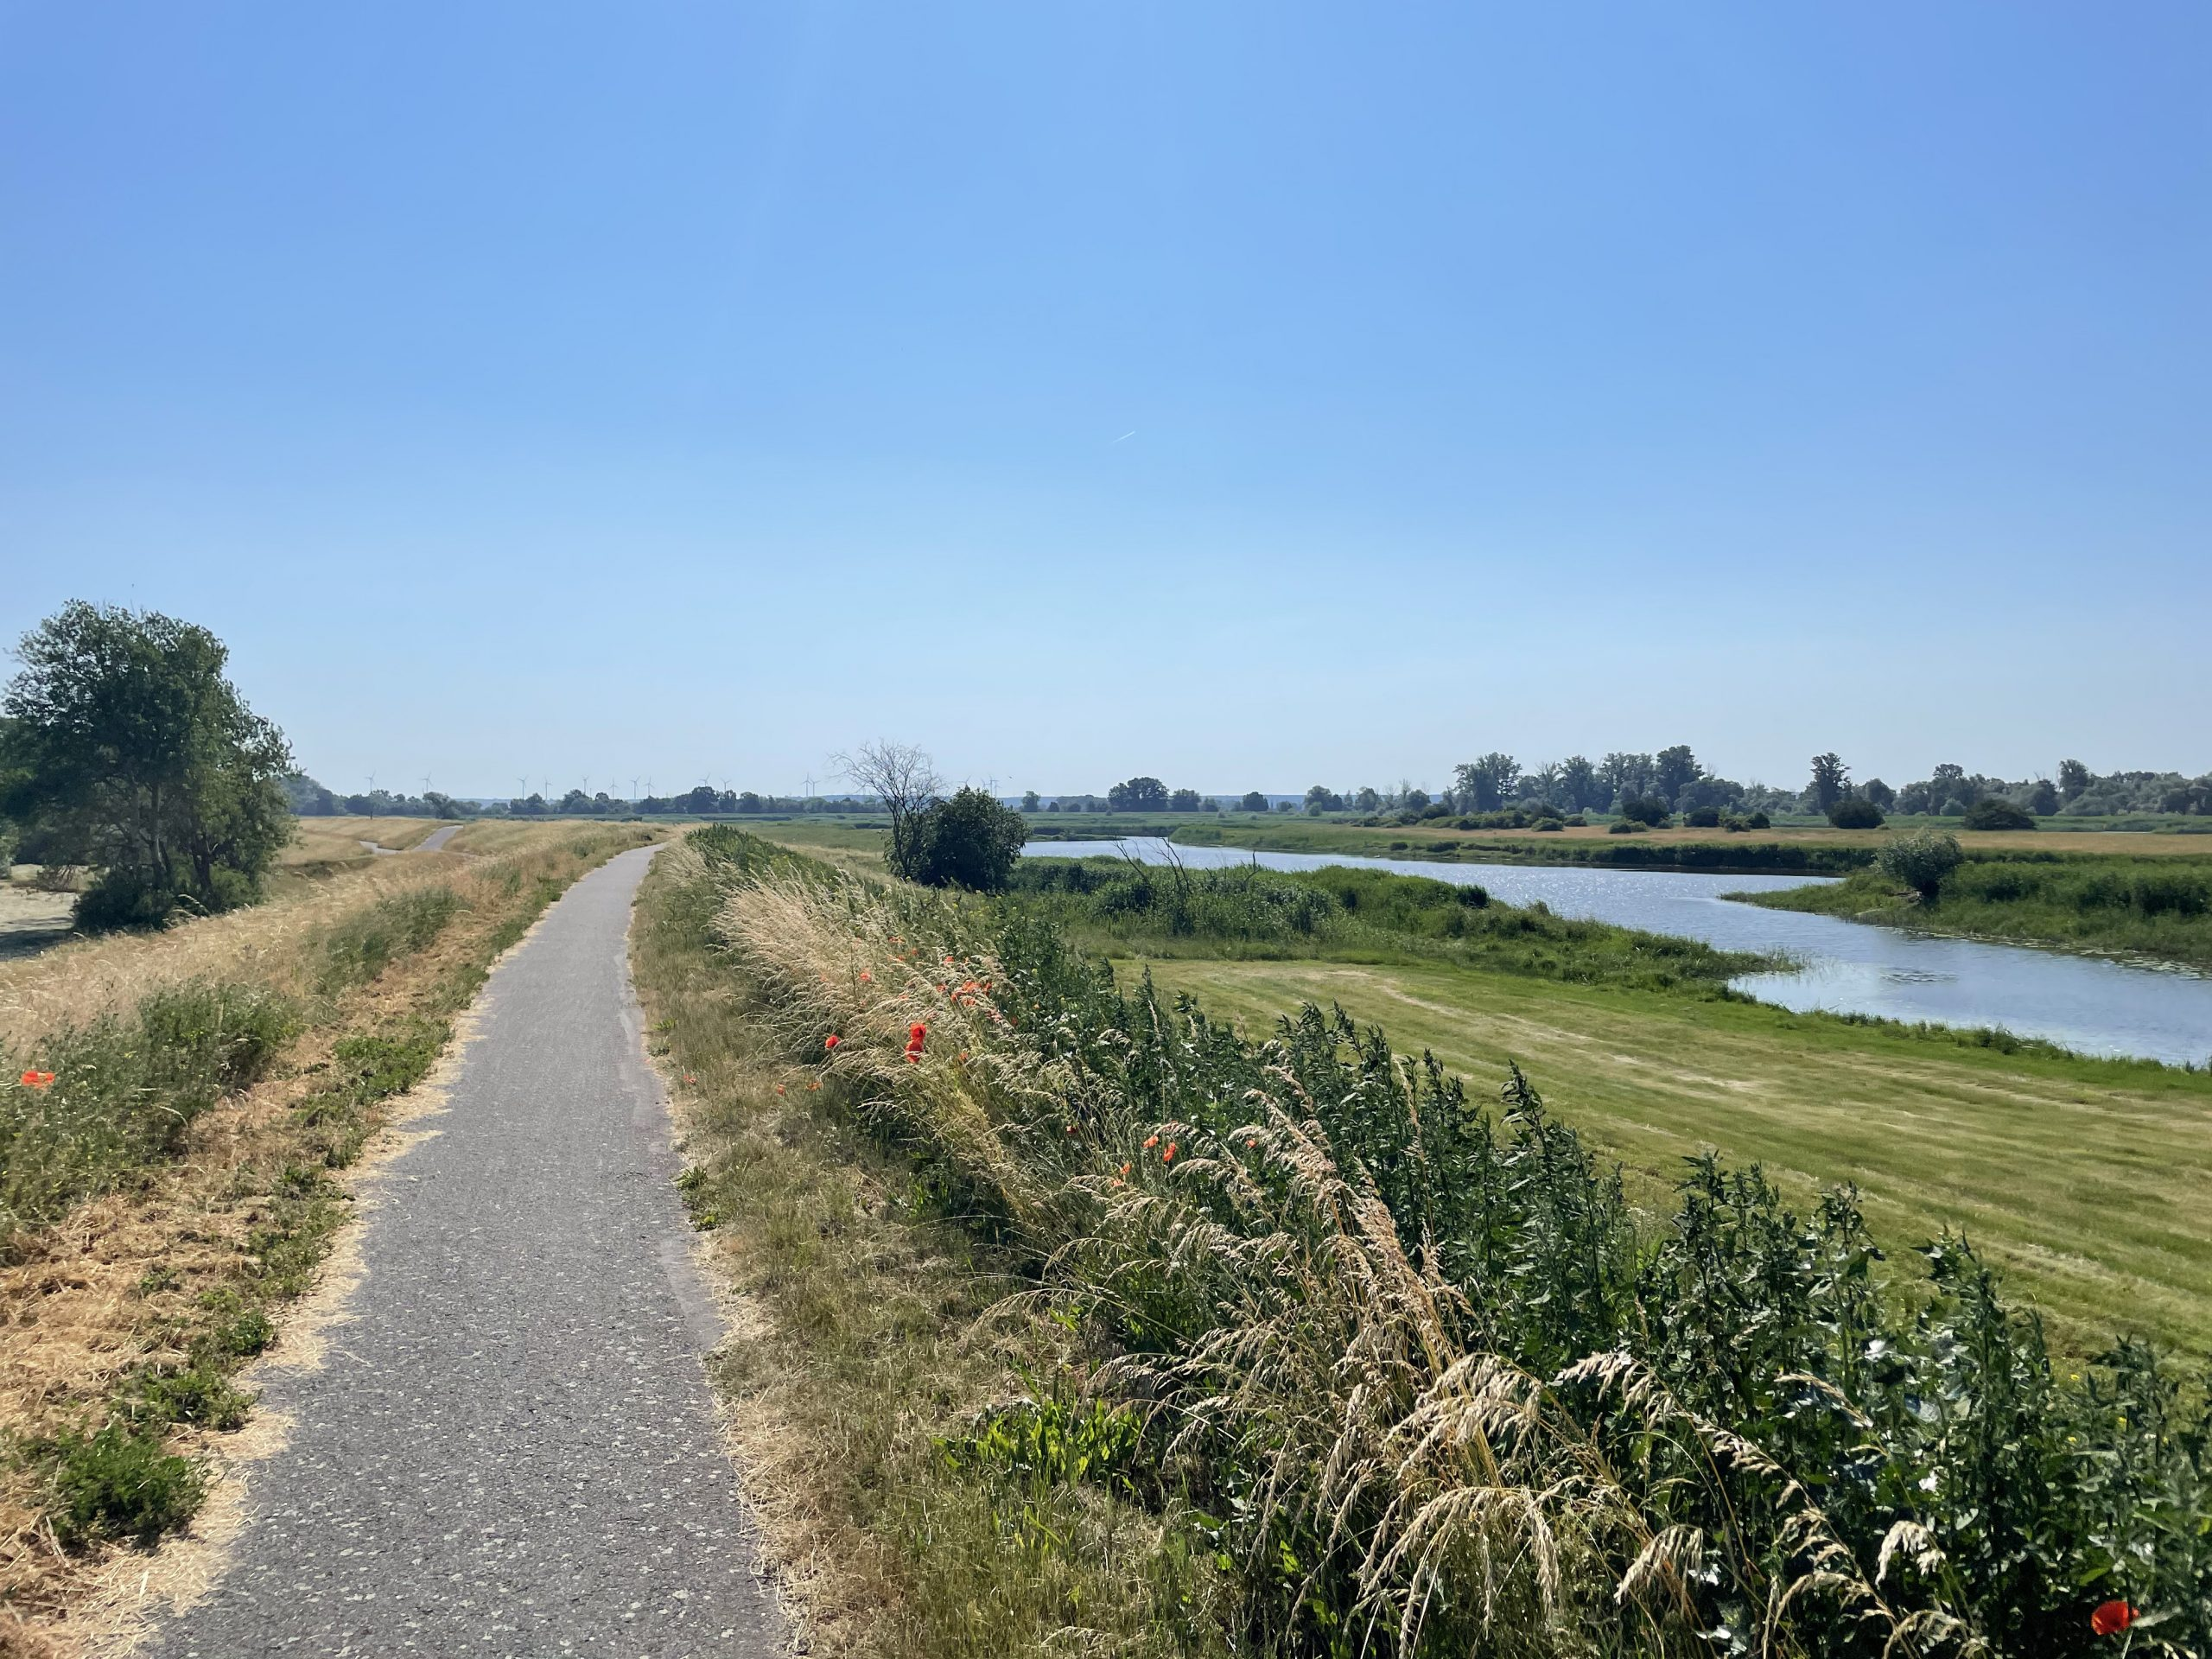 bei Klessin - Ostsee-Tour - iamcycling.de